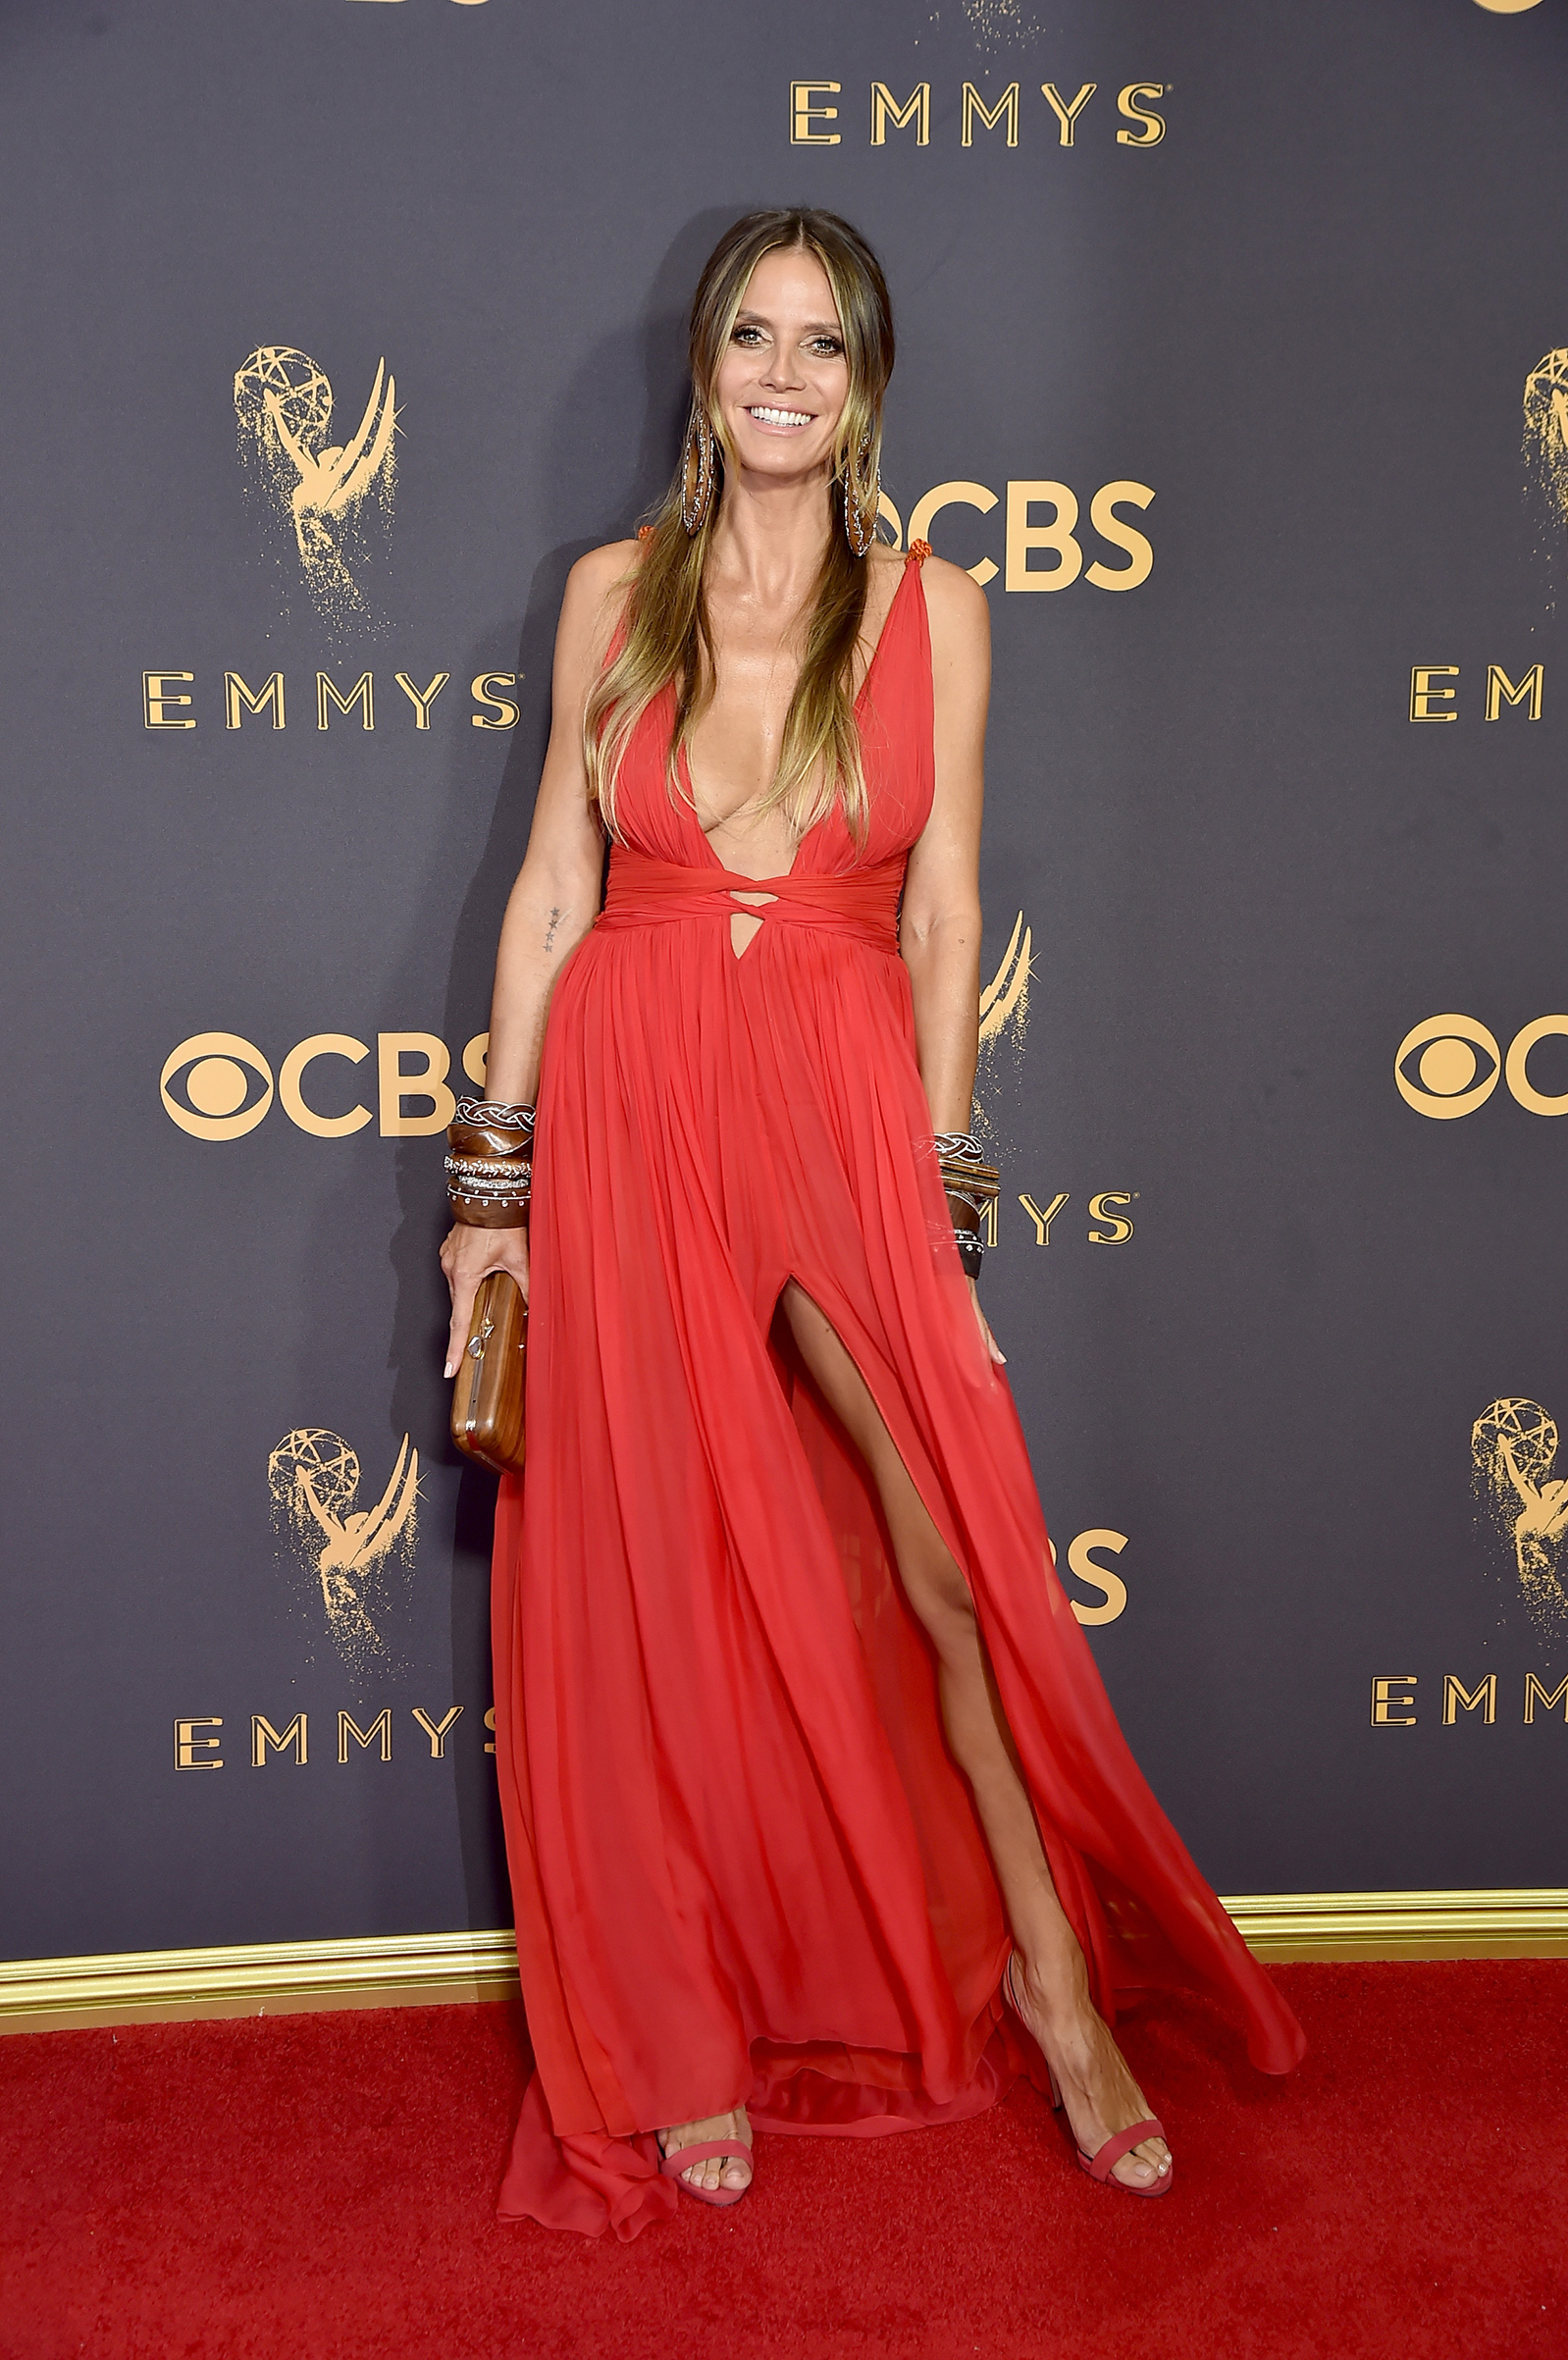 TV personality/model Heidi Klum attends the 69th Annual Primetime Emmy Awards at Microsoft Theater on September 17, 2017 in Los Angeles, California.